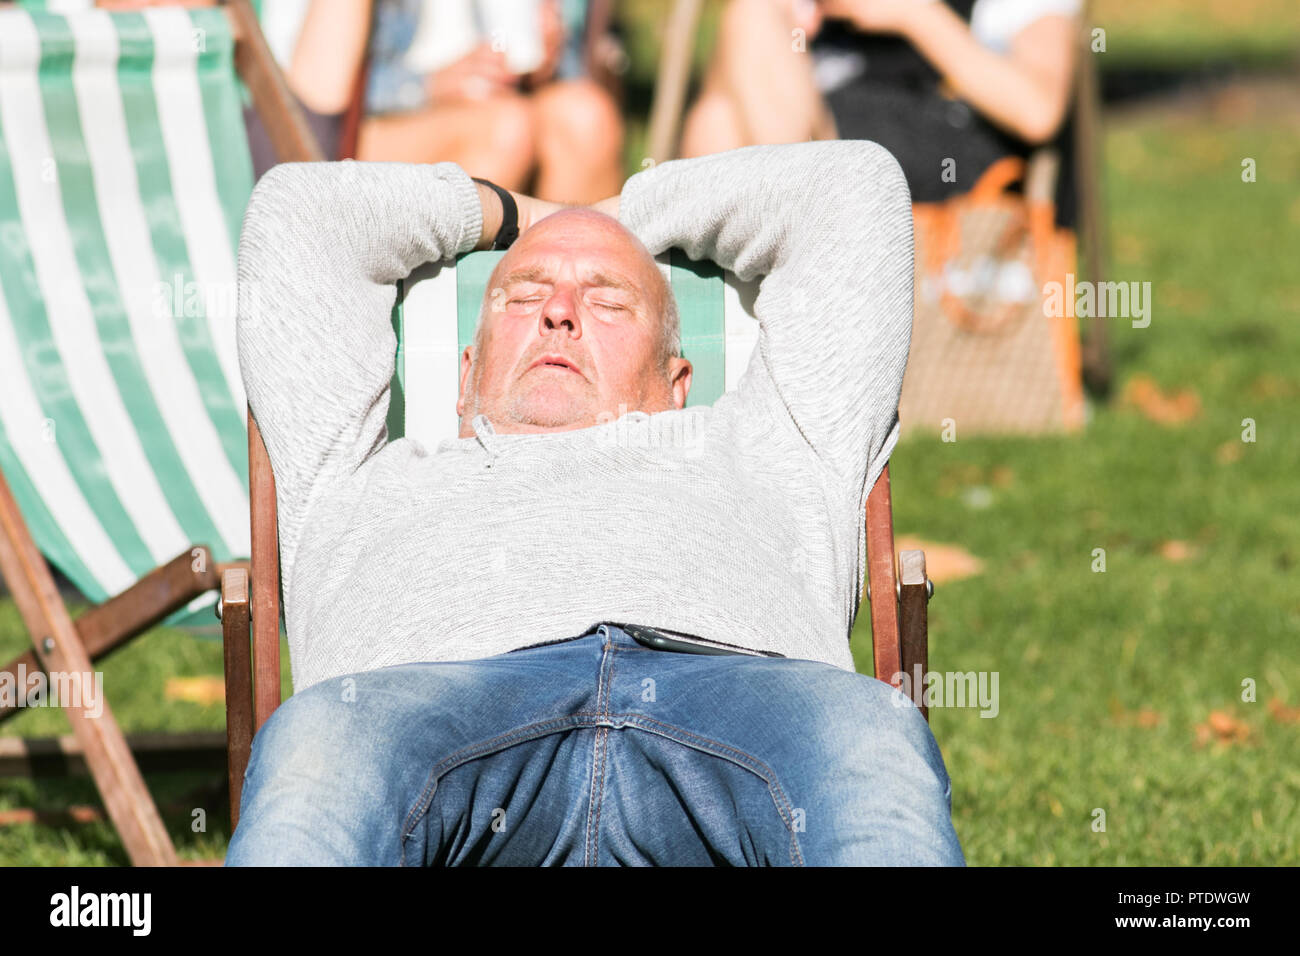 London UK. 9th Ocrober 2018. A man catching a nap in   the afternoon  sunshine in Saint James's Park covered in fallen leaves on a warm autumn day as October is forecast to be the hottest month in Seven years as the Indian summer returns Credit: amer ghazzal/Alamy Live News - Stock Image